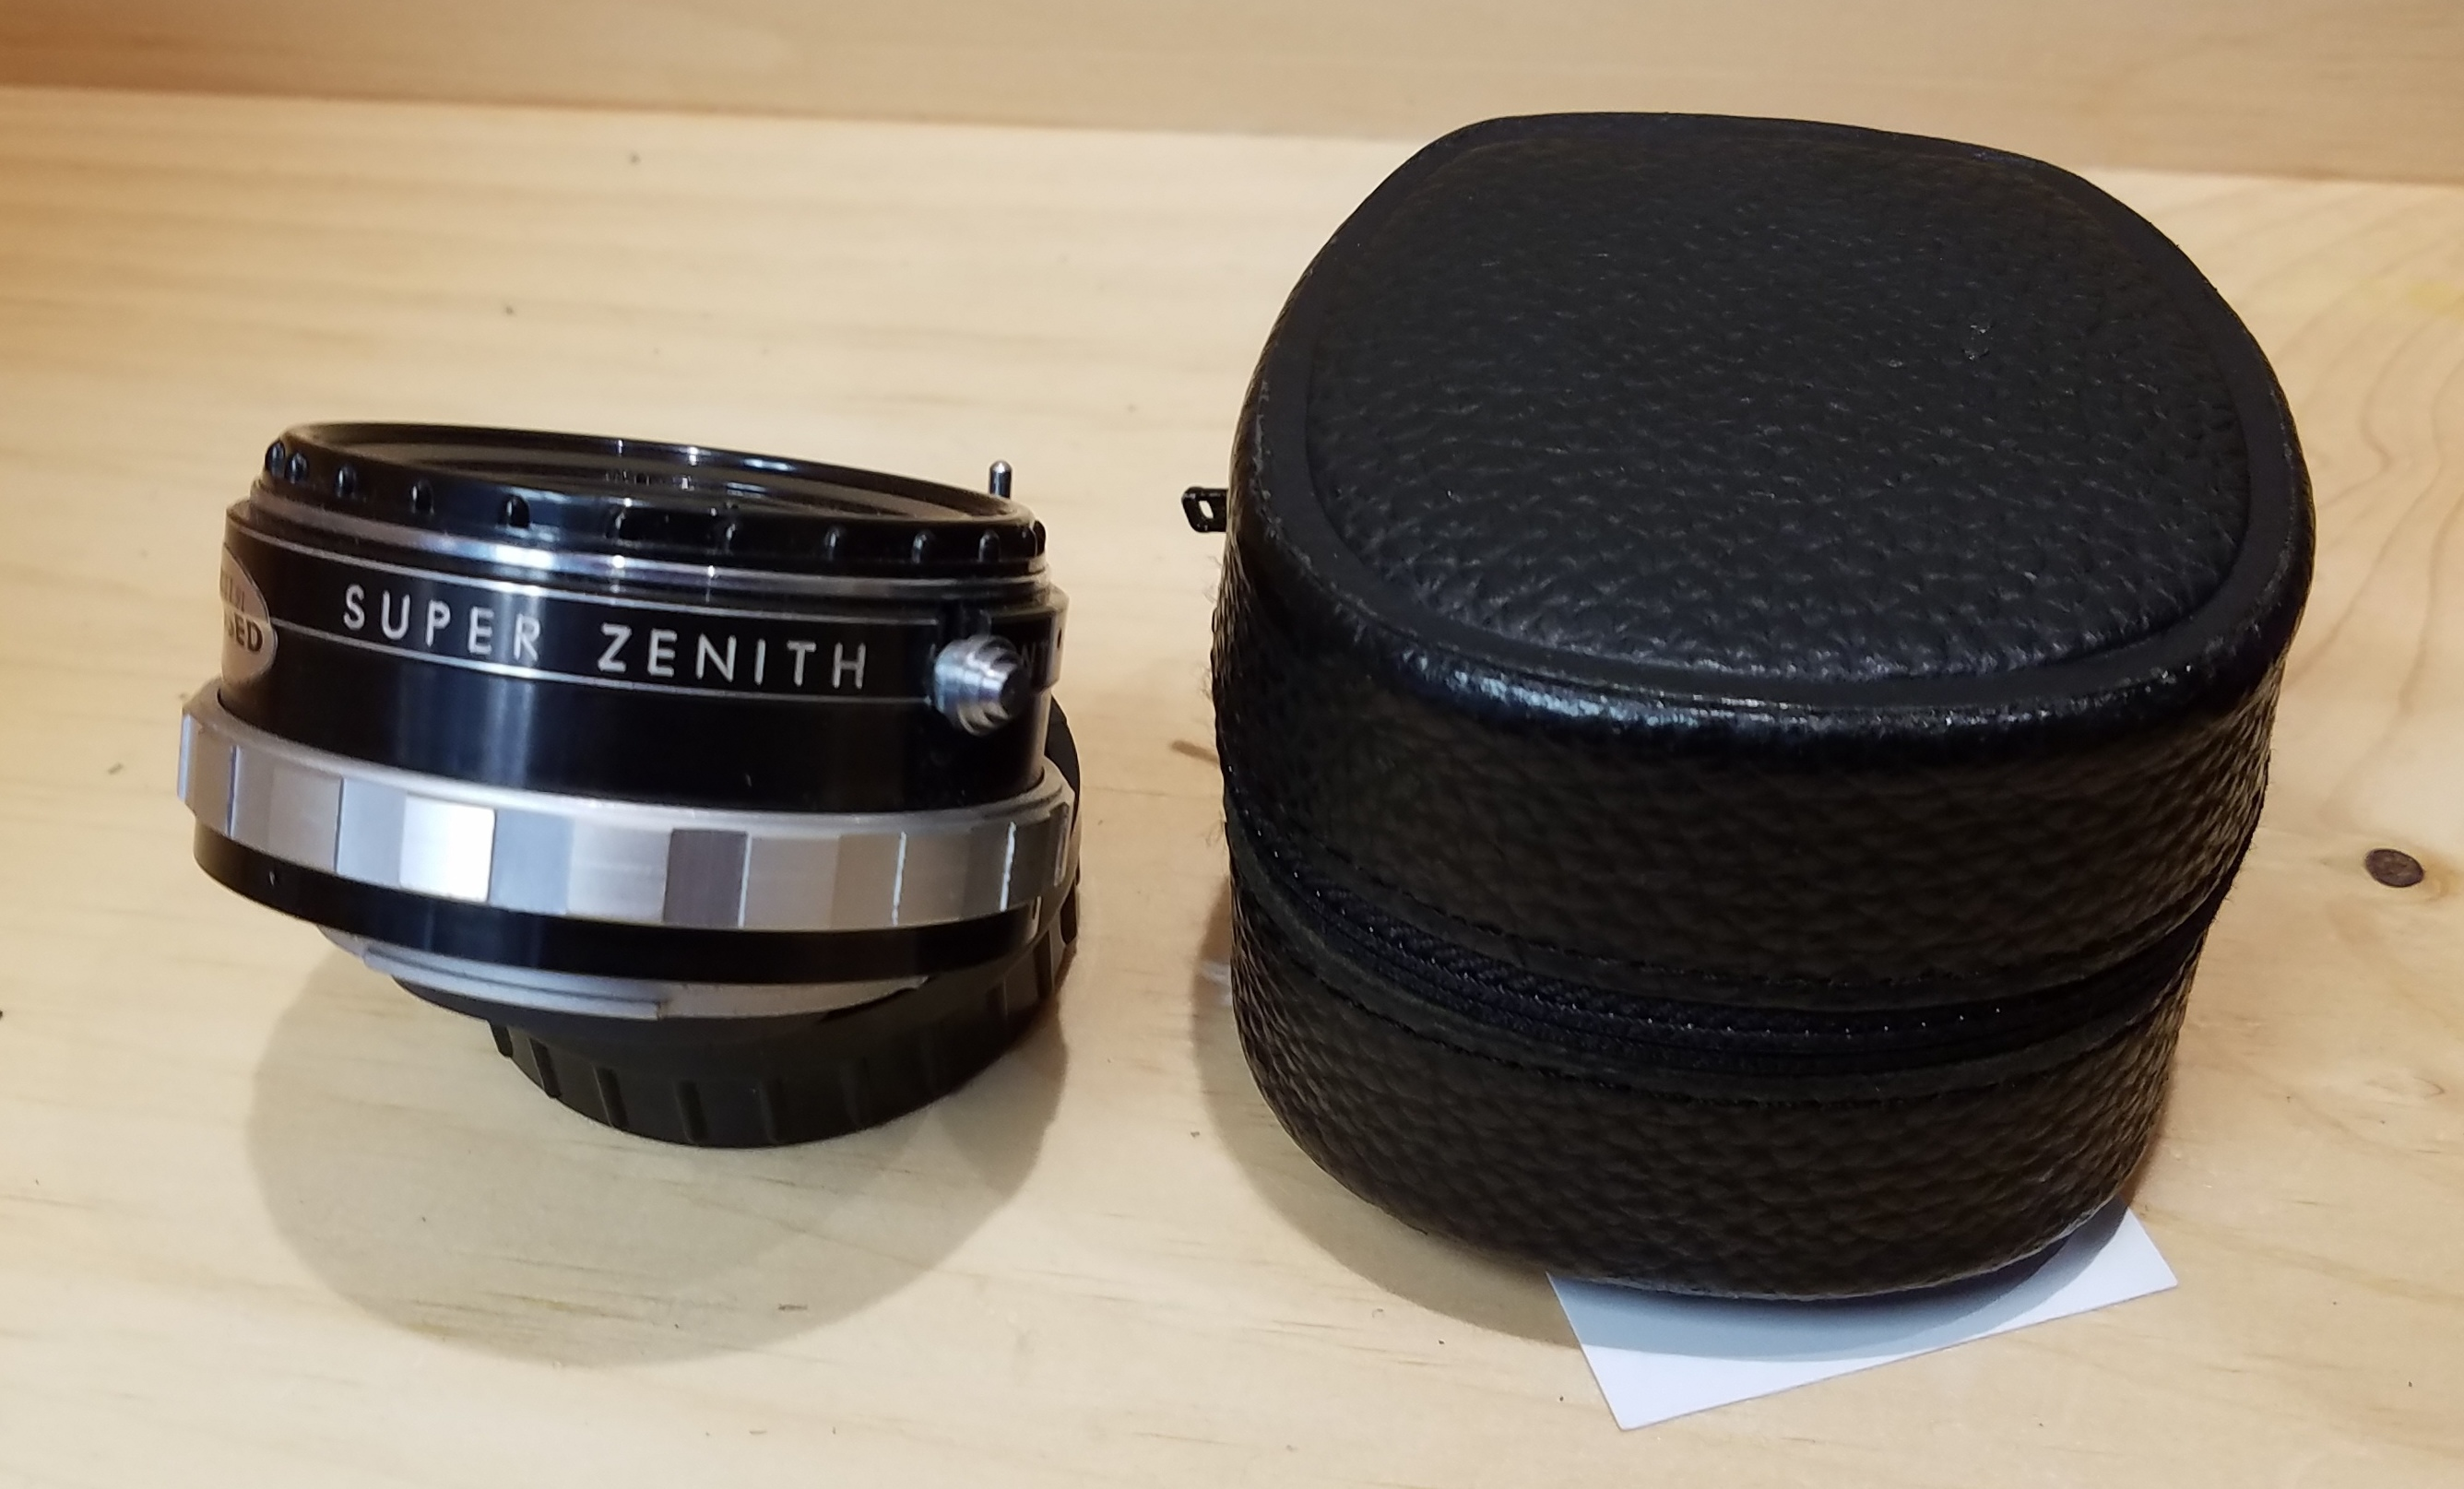 NIKON  SUPER ZENITH  LENS CAMERA EQUIPMENT